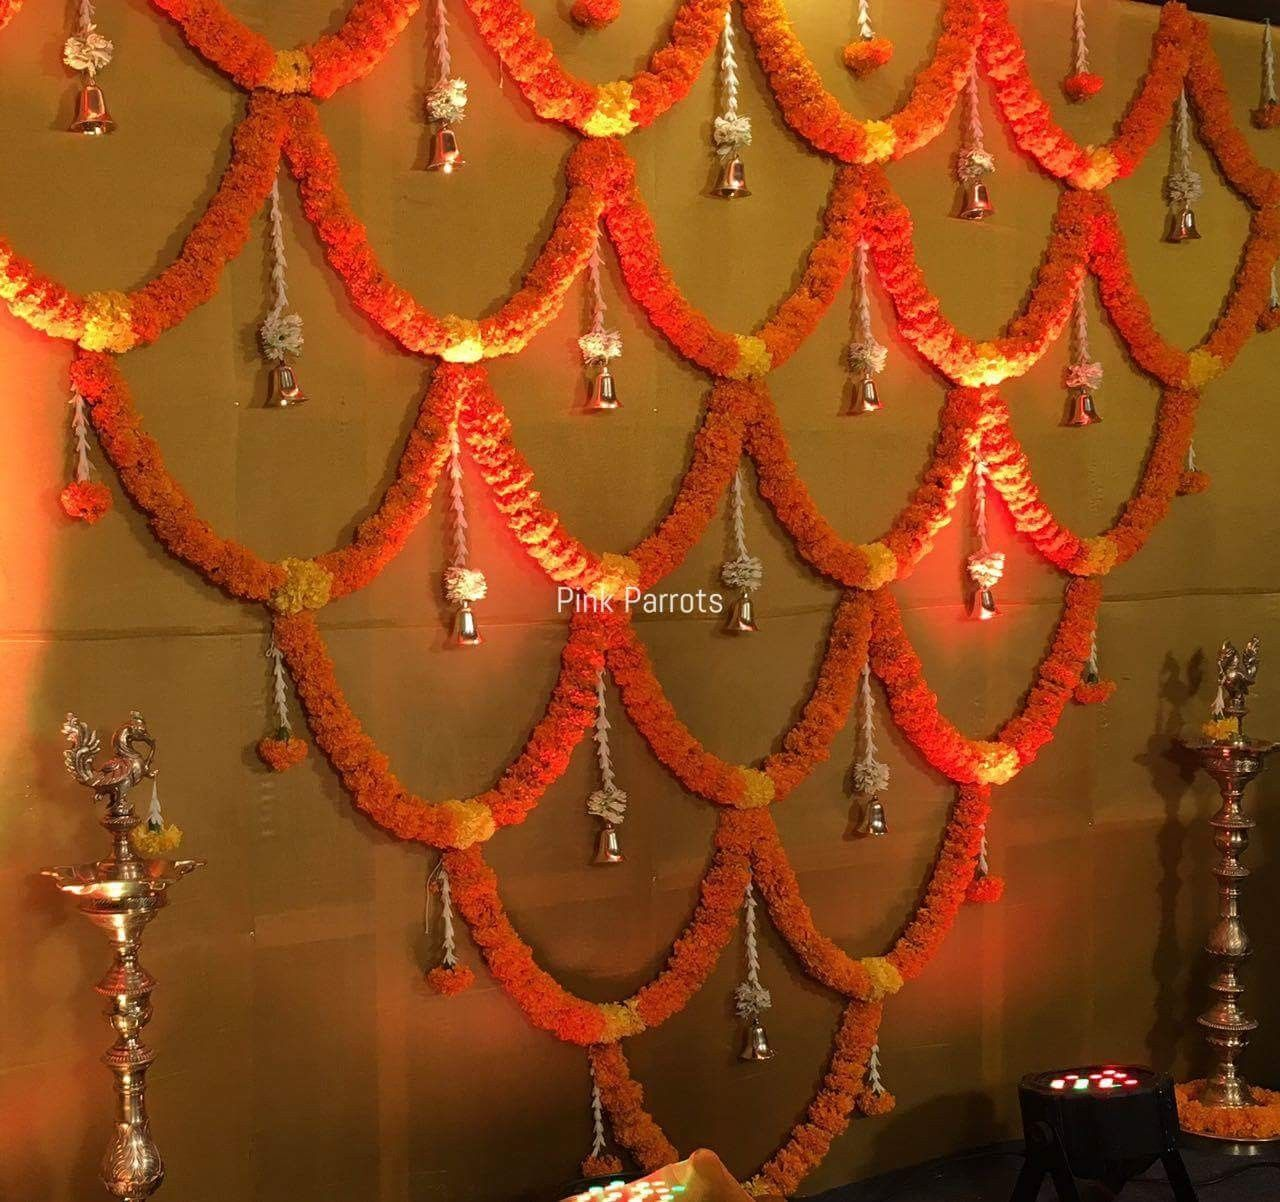 Wedding stage decoration ideas kerala  Pin by Anj on Deco  Pinterest  Decor Wedding decorations and Home